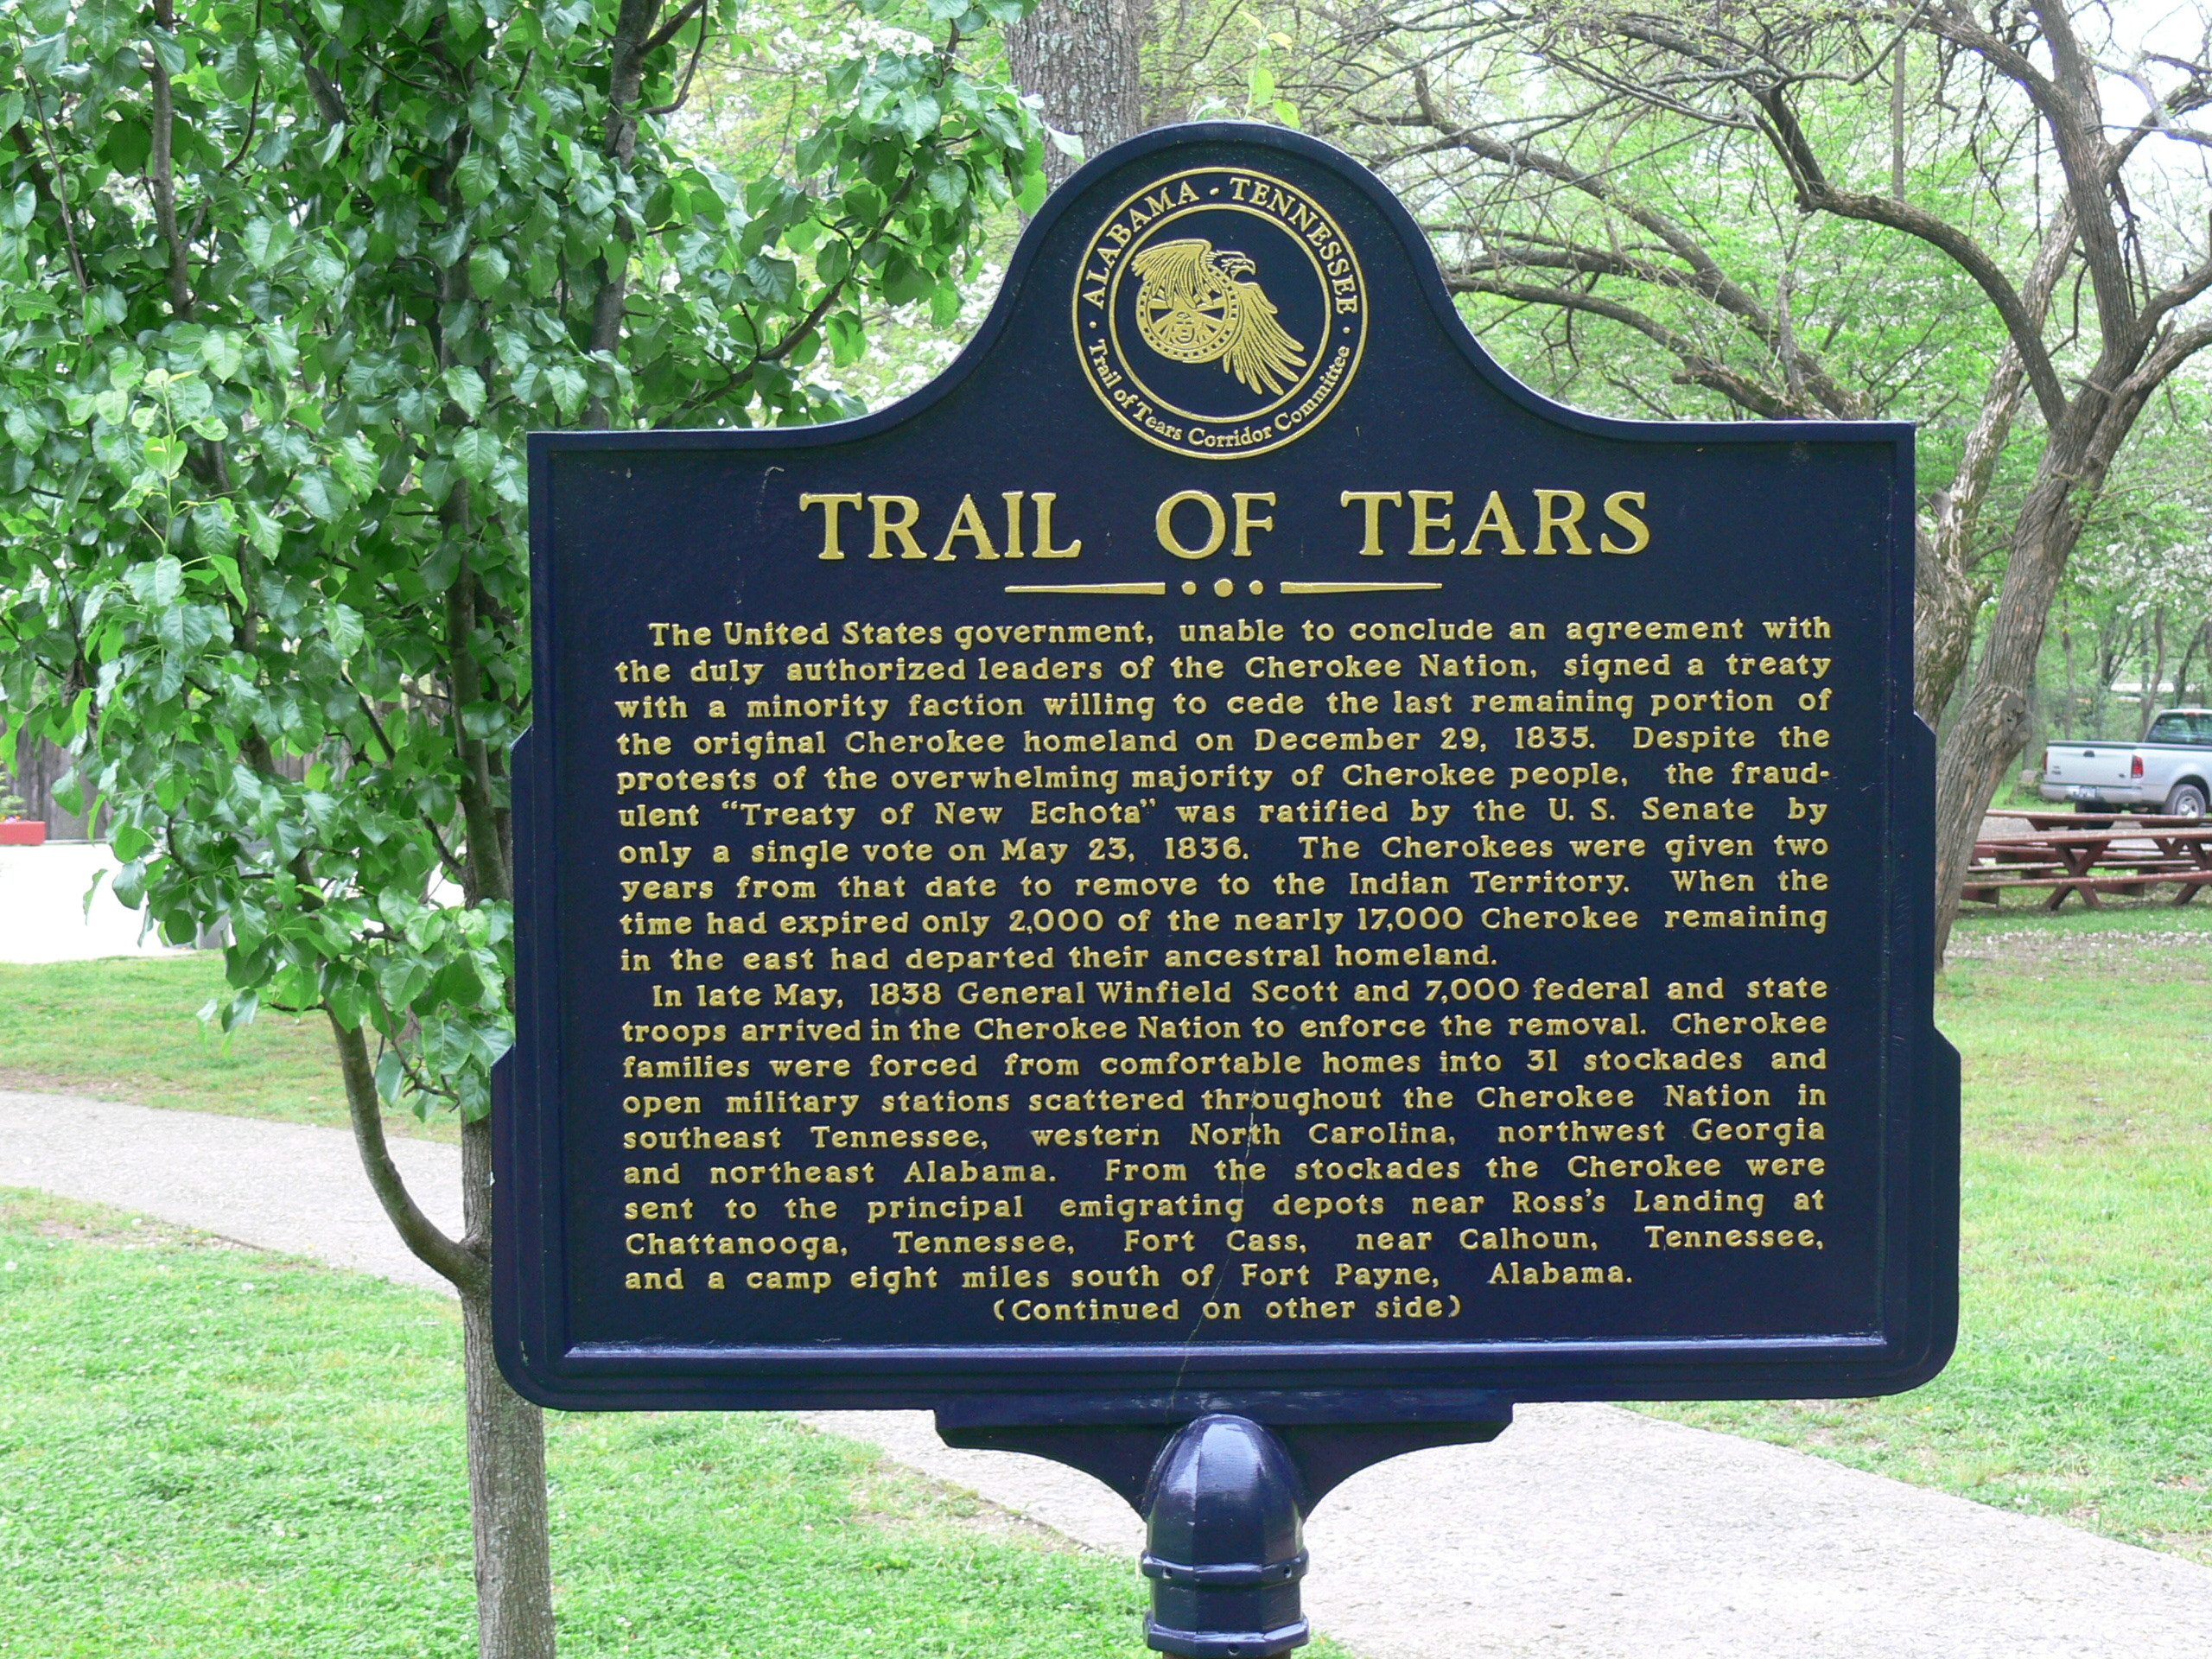 Cherokee_Heritage_Center_-_Trail_of_Tears_Schild_1.jpg (2560×1920)